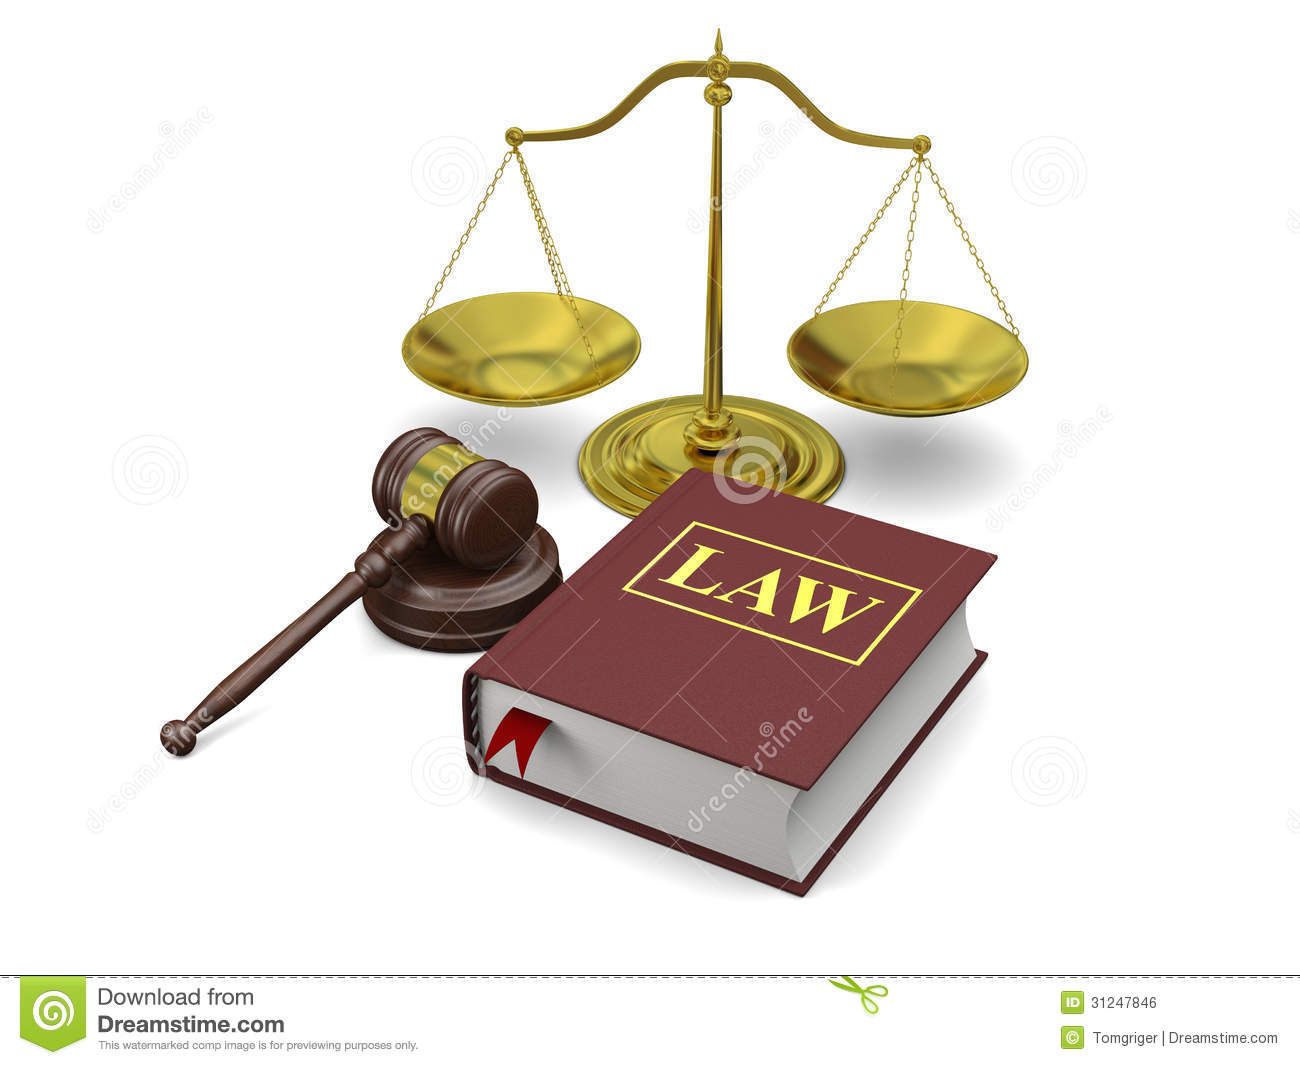 Symbols Of Law And Justice | www.imgkid.com - The Image ...